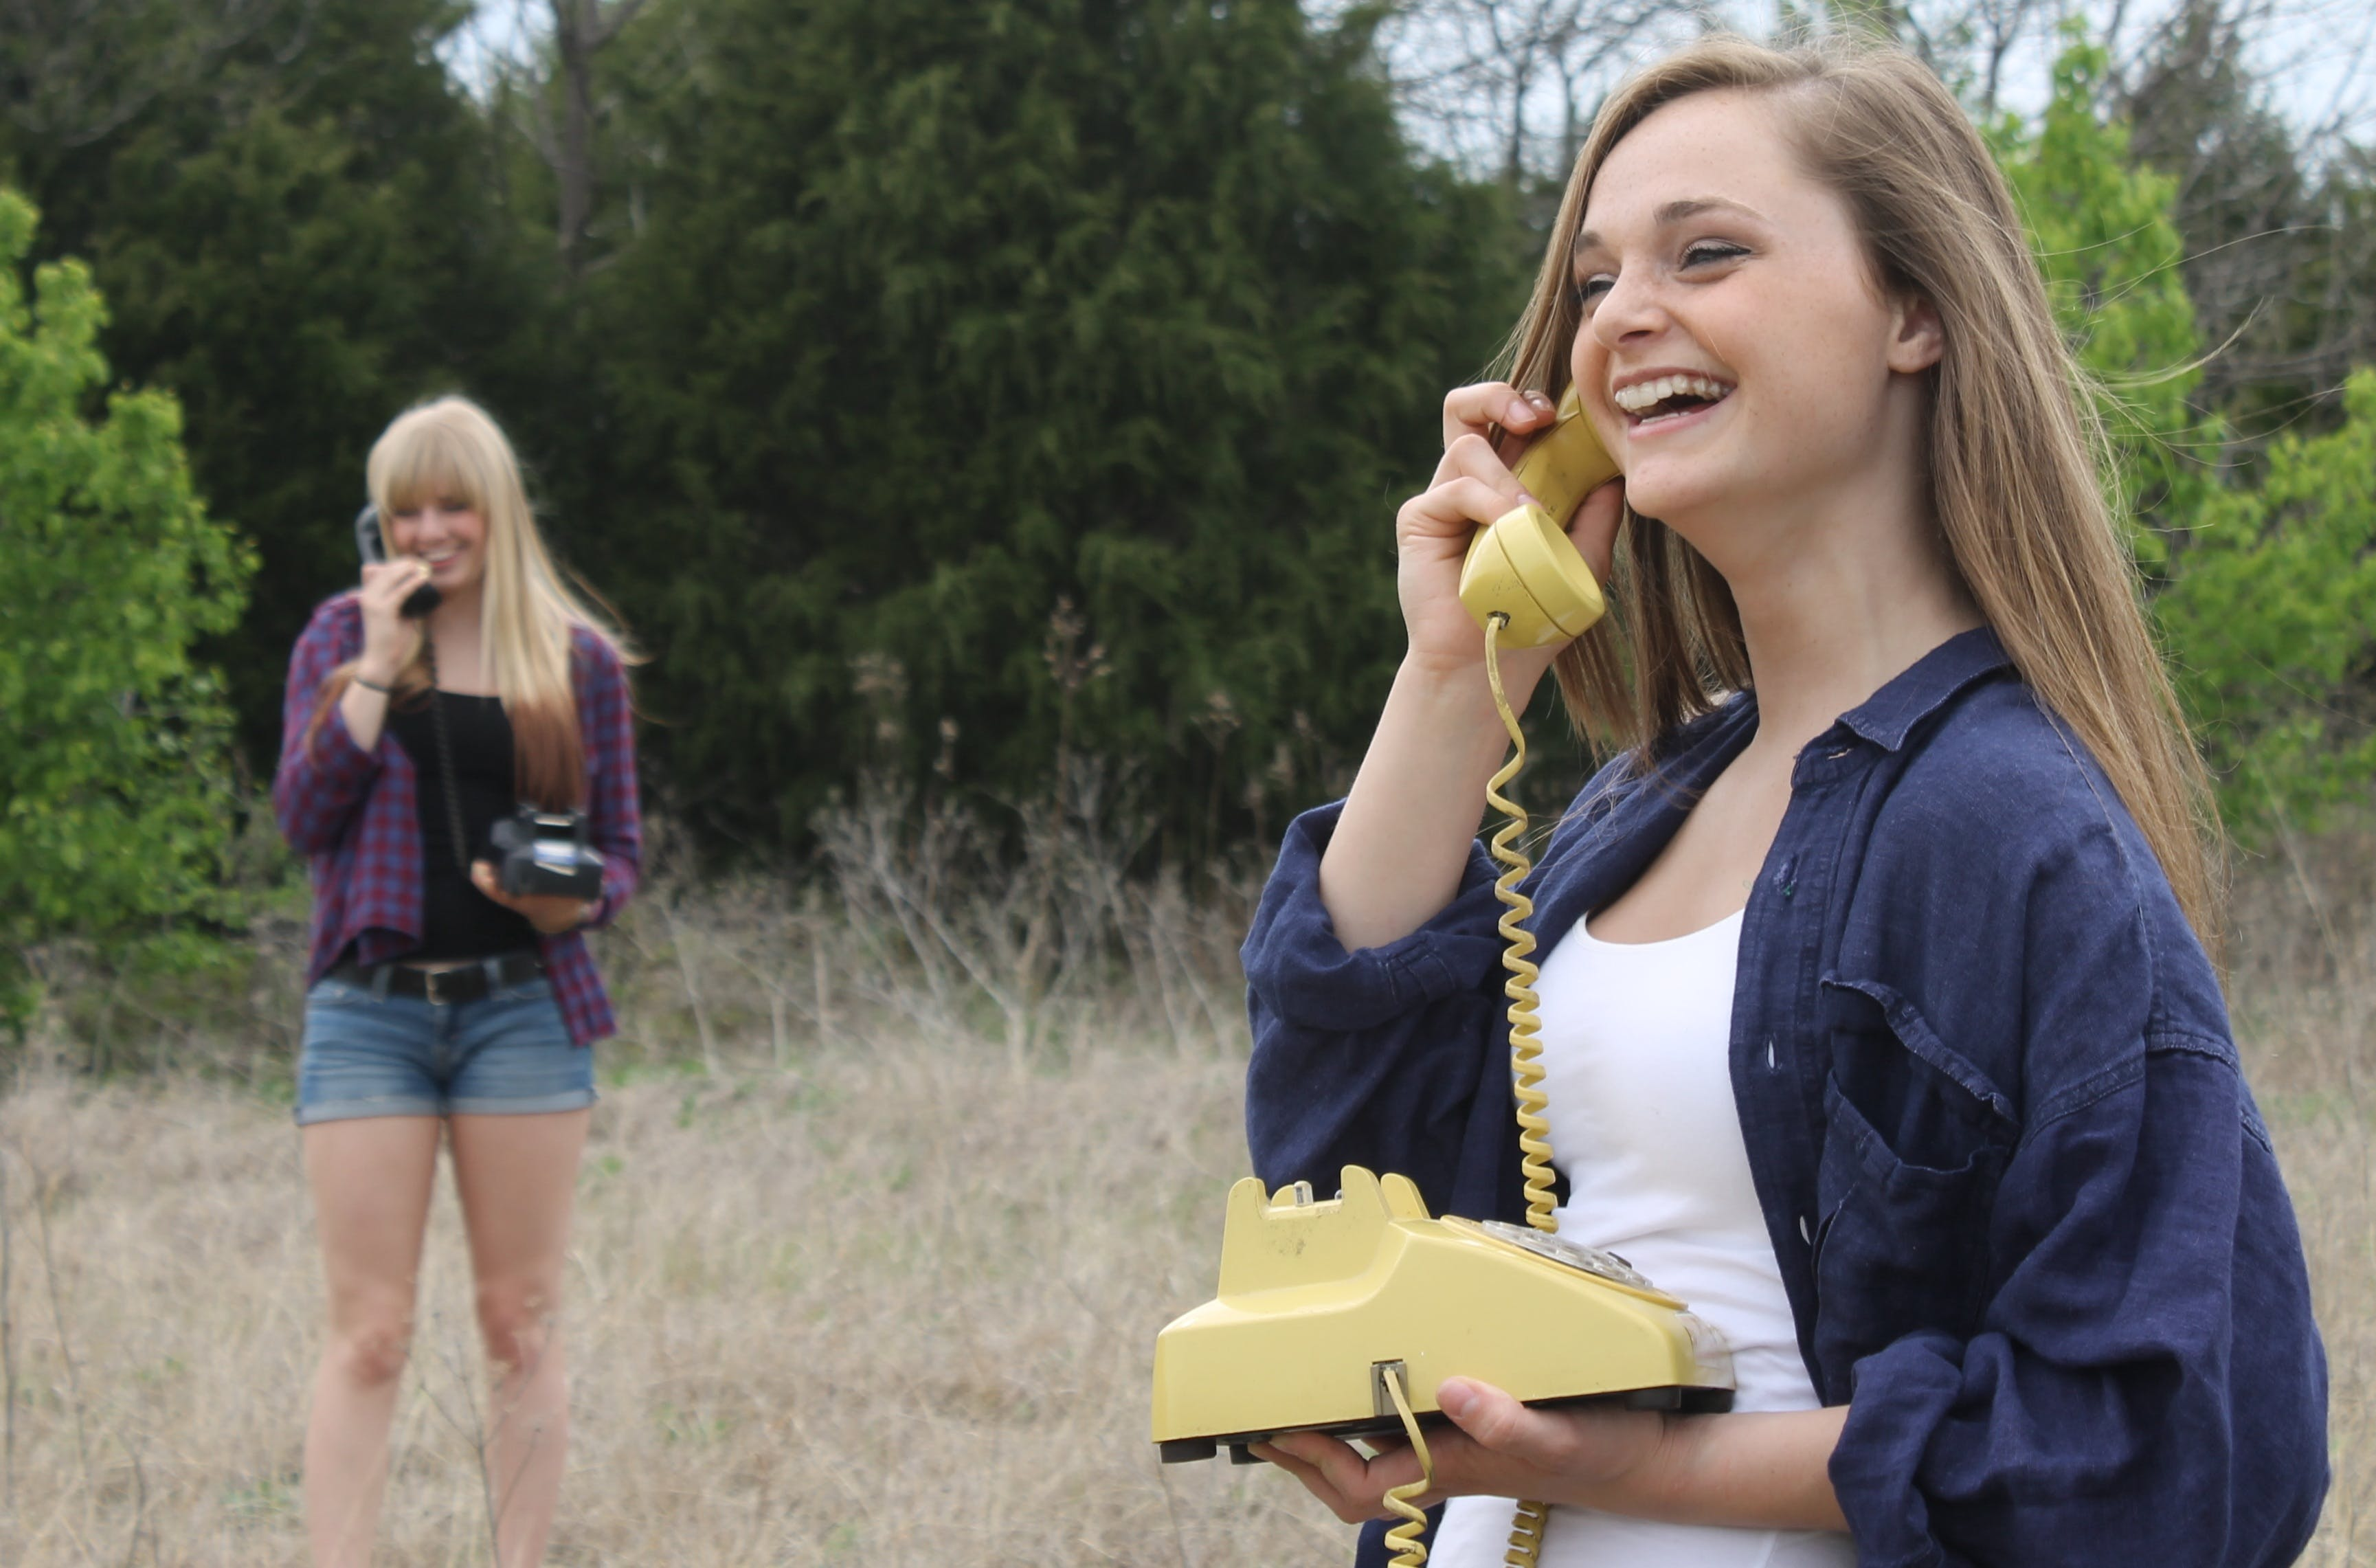 Woman Wearing Blue Denim Button-up Jacket While Using Brown Rotary Phone